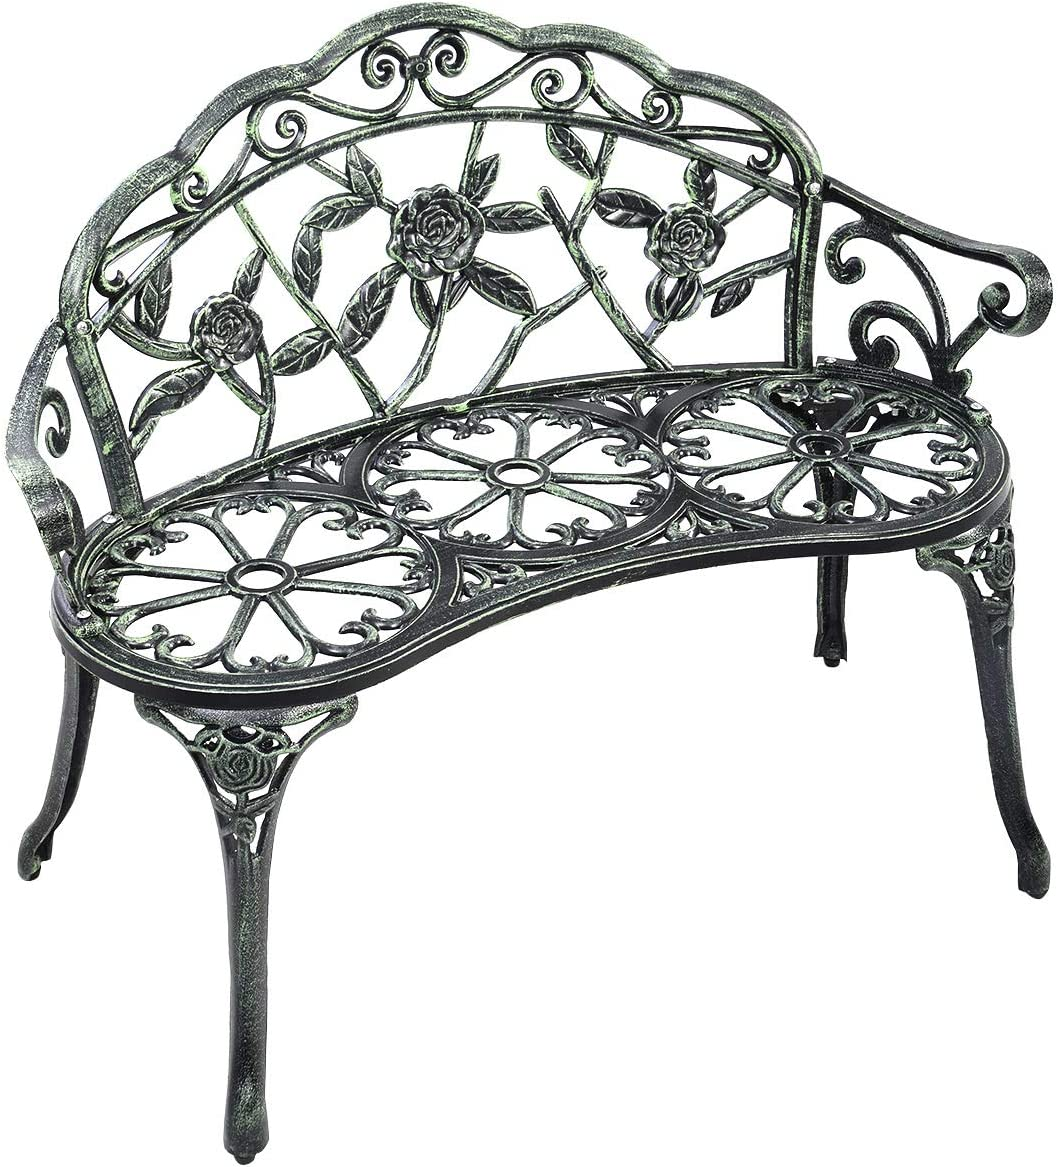 Giantex Outdoor Garden Bench Iron Patio Benches for Outdoors, Porch Bench Chair with Curved Legs Cast Aluminum Rose Antique Style, Green